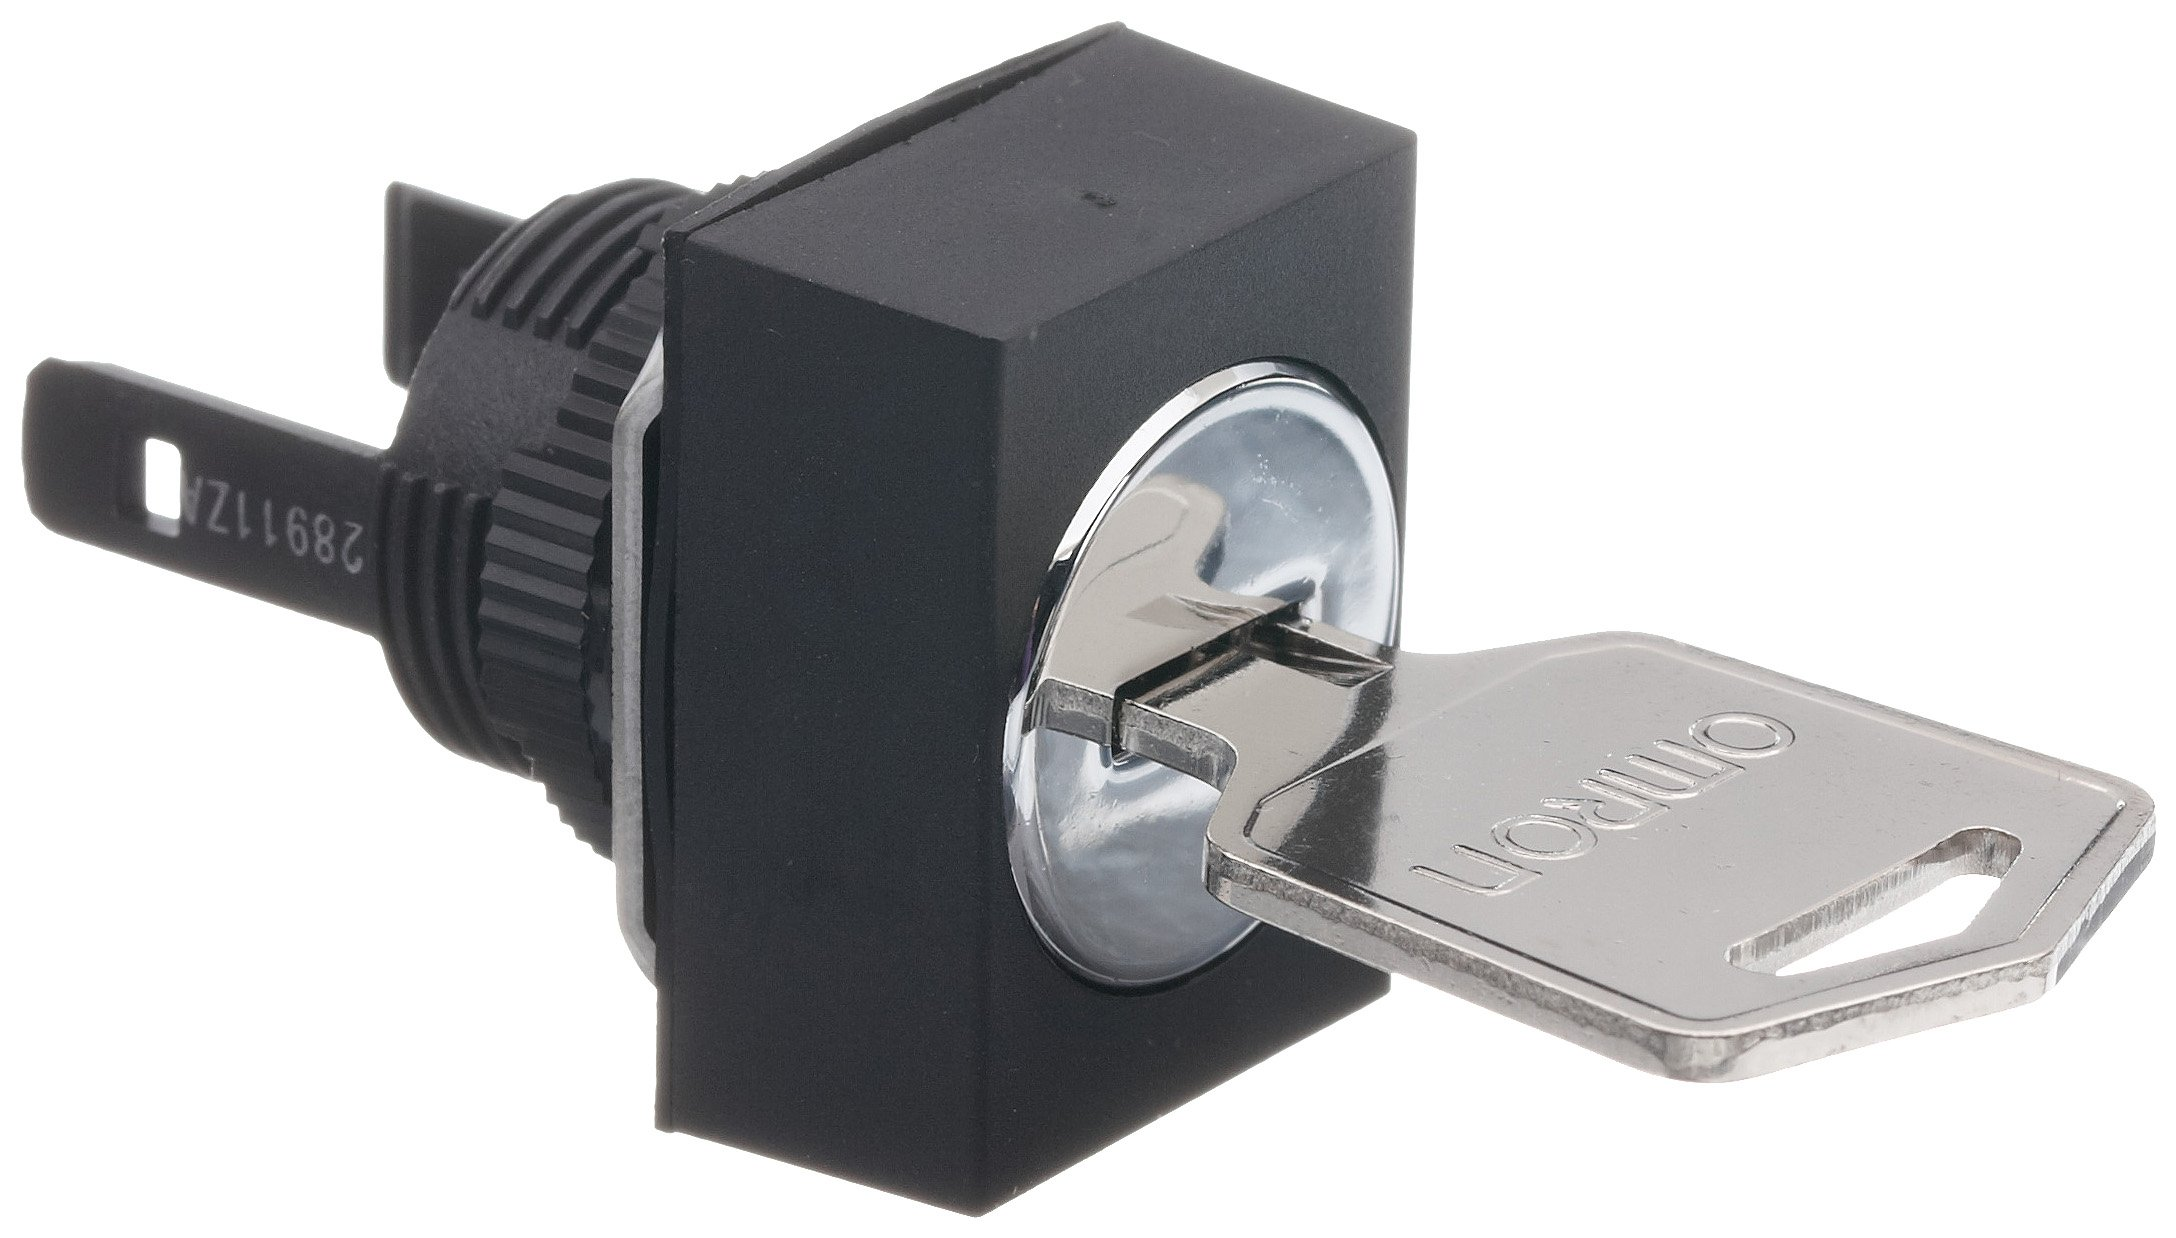 Omron A165K-J3M Key Type Selector, IP65 Oil-Resistant, 3 Notches, Manual Reset Method, Left Right and Center Key Release Postion, Rectangular